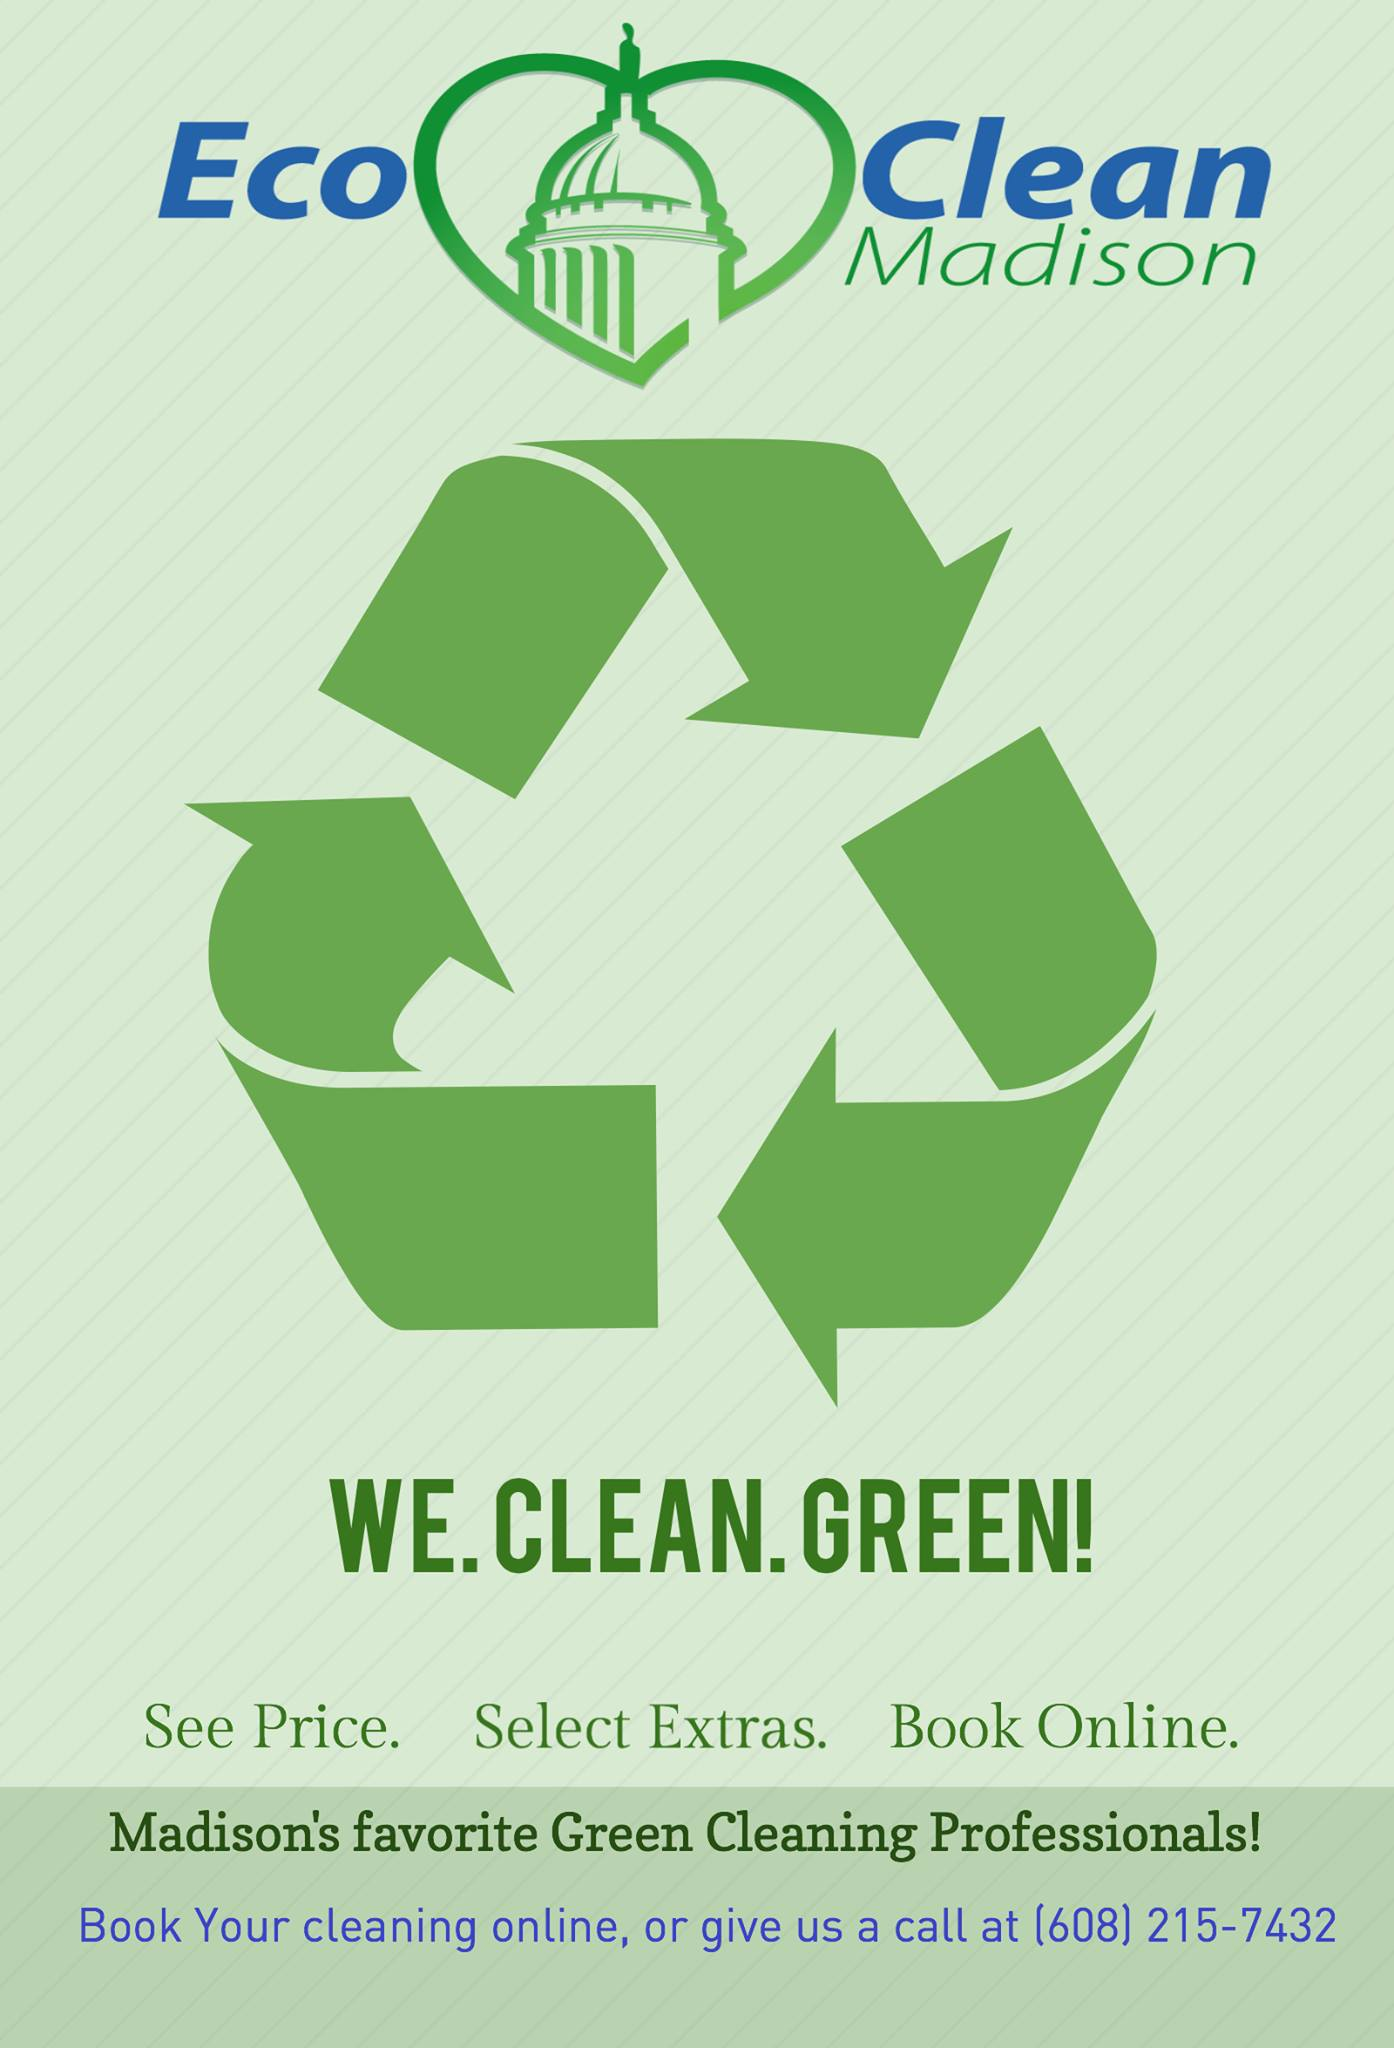 eco-clean-madison-green-cleaning